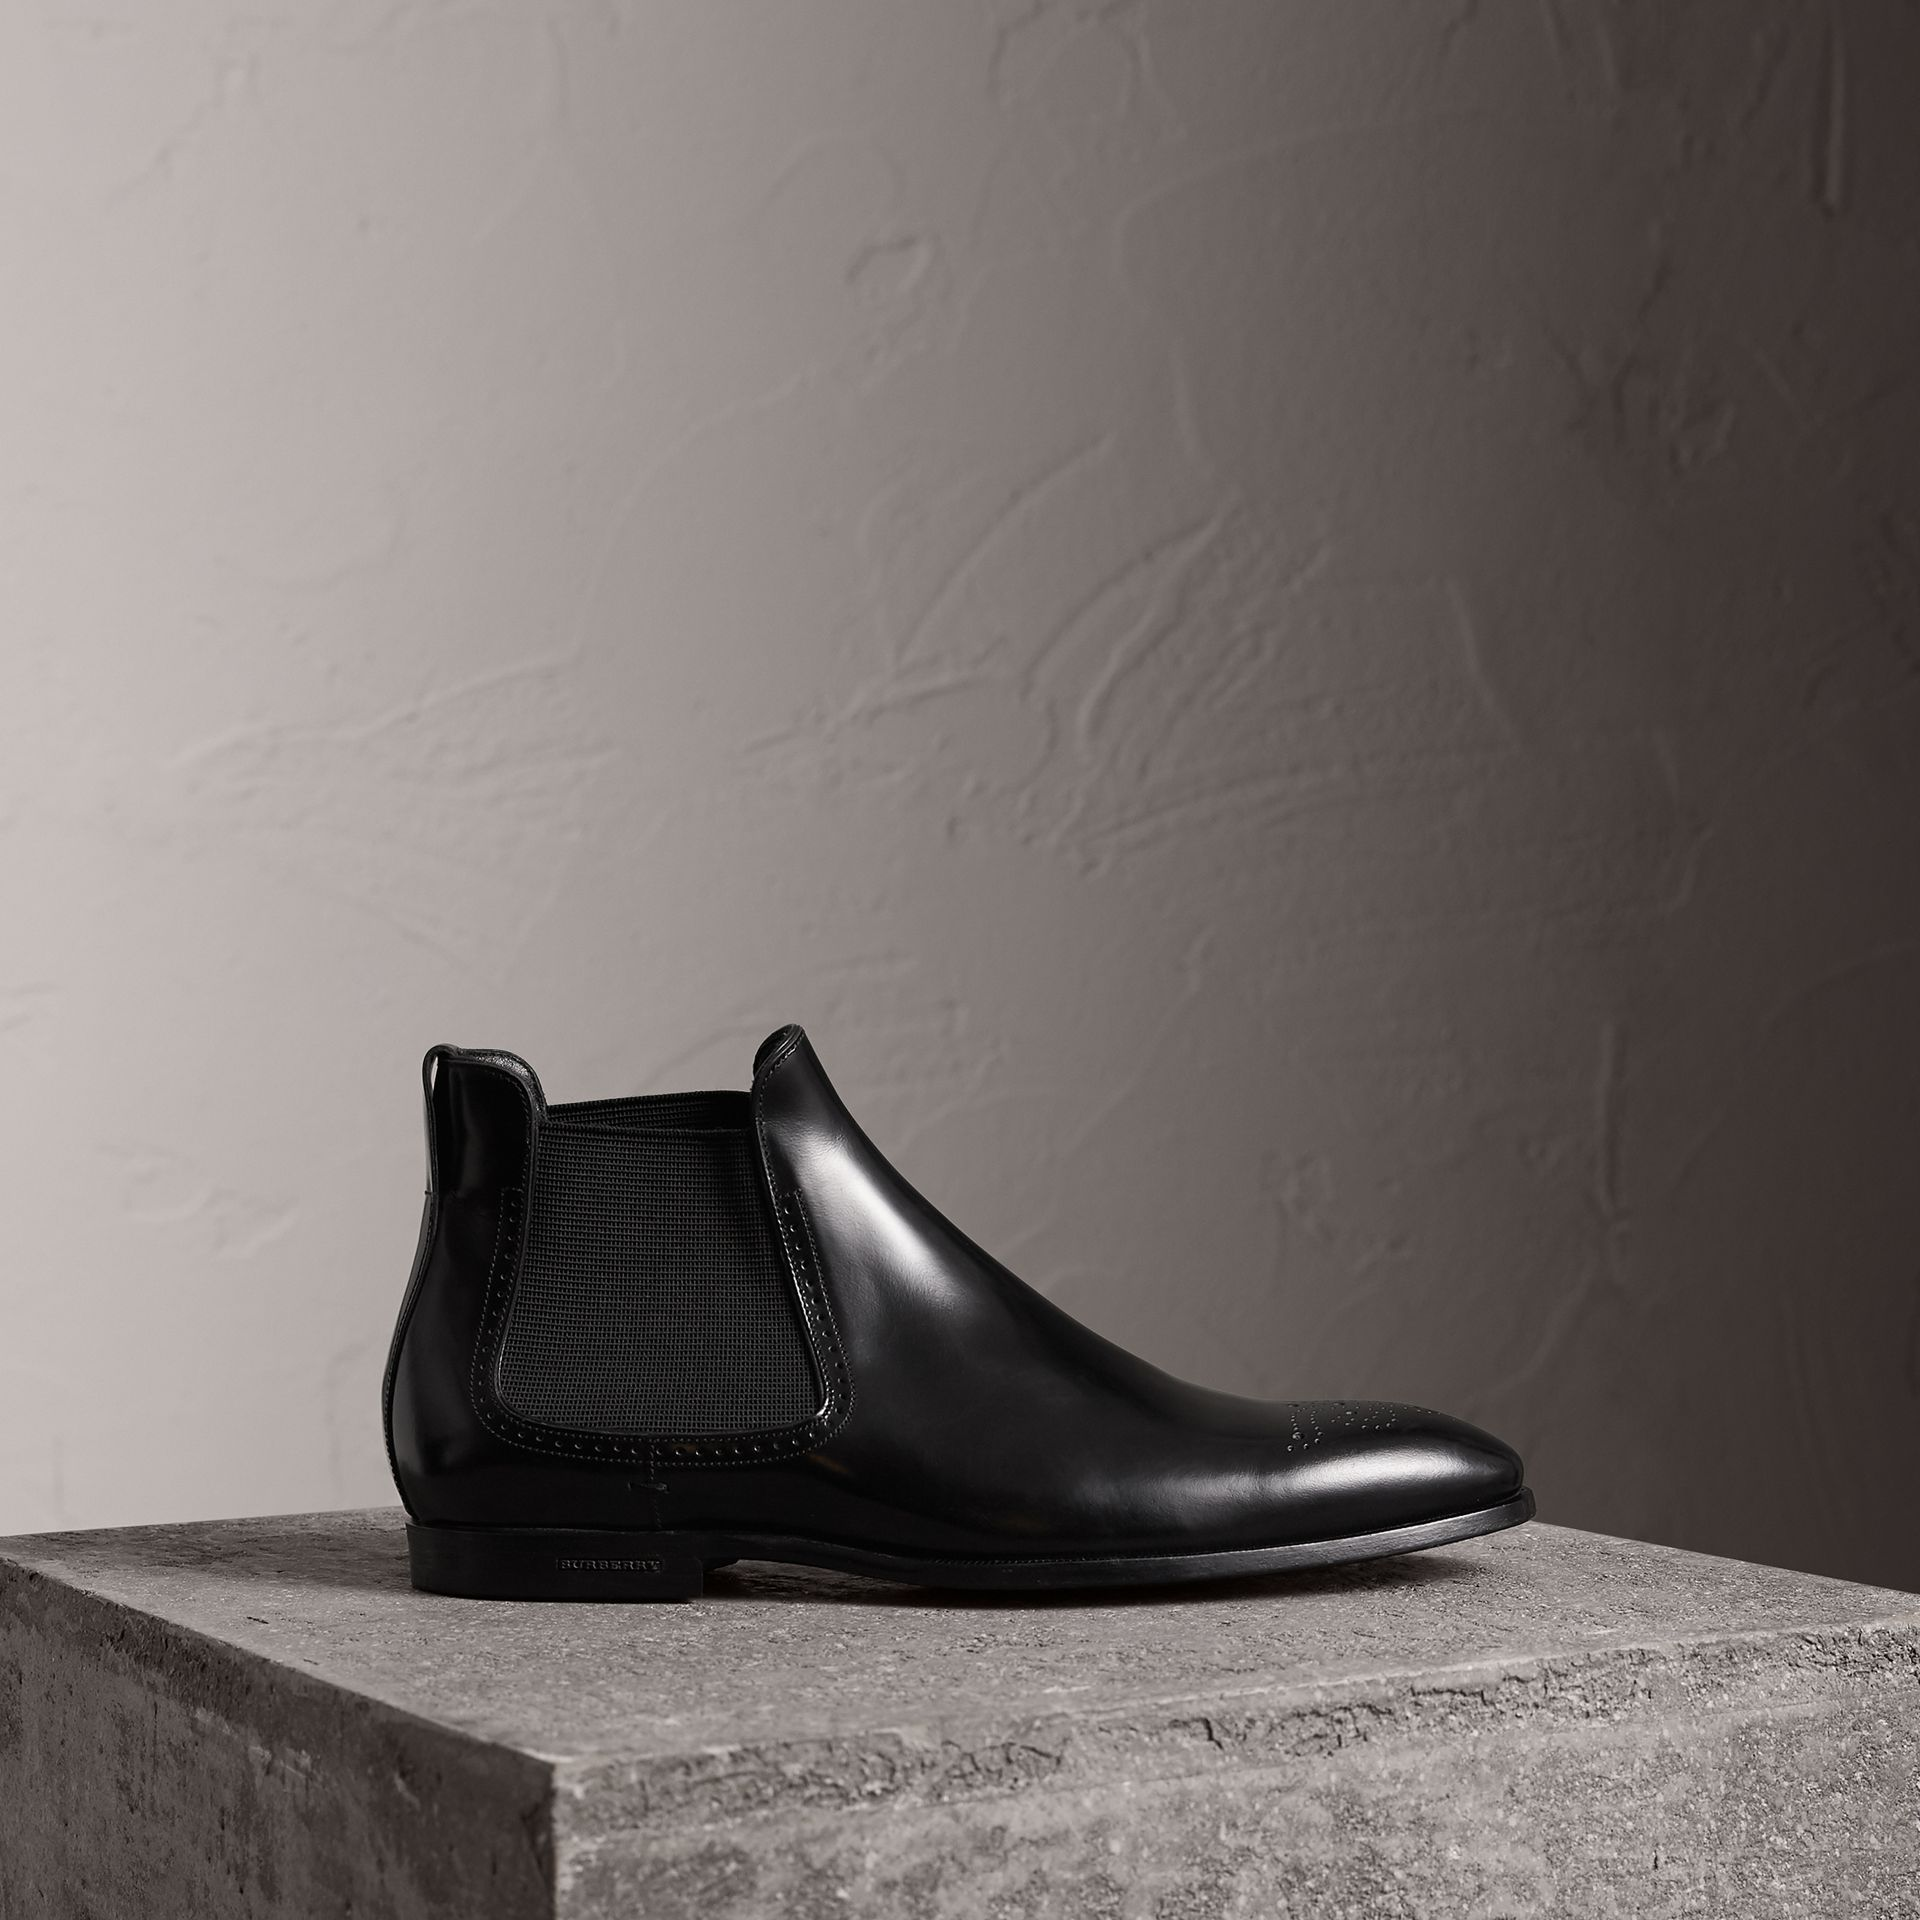 Bottines Chelsea en cuir ornées de perforations (Noir) - Homme | Burberry Canada - photo de la galerie 0